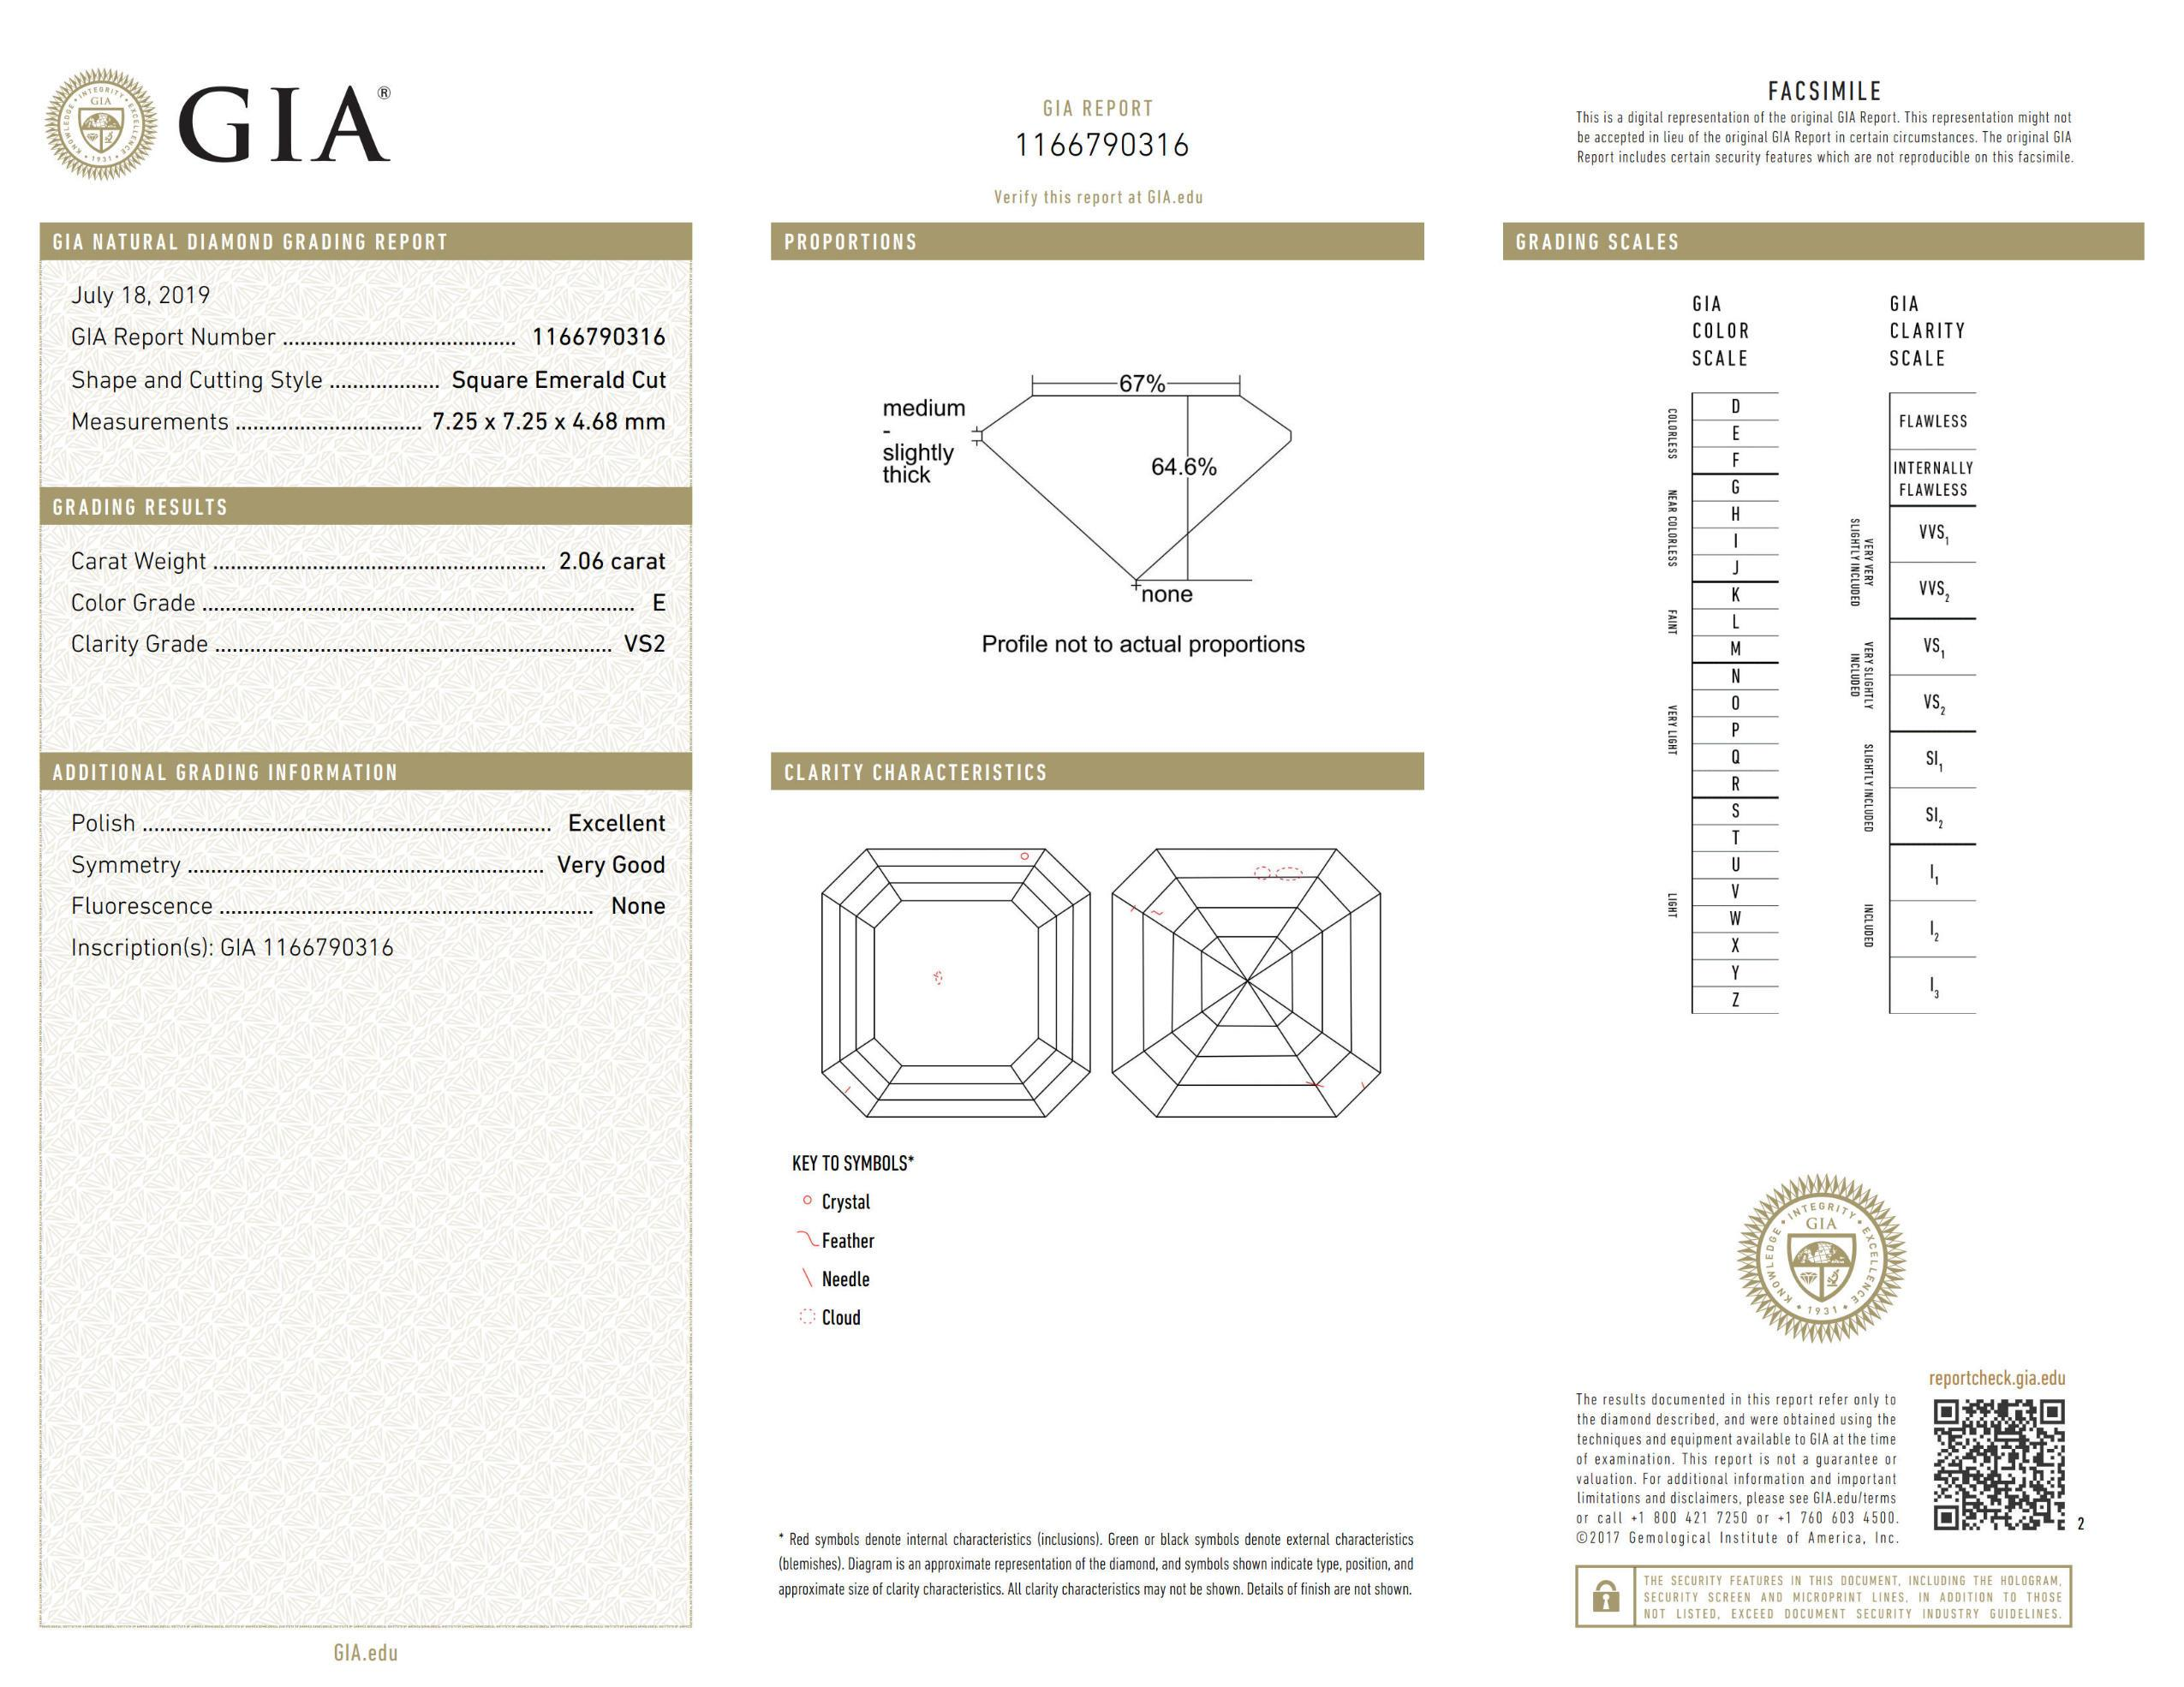 This is a 2.06 carat asscher shape, E color, VS2 clarity natural diamond accompanied by a GIA grading report.